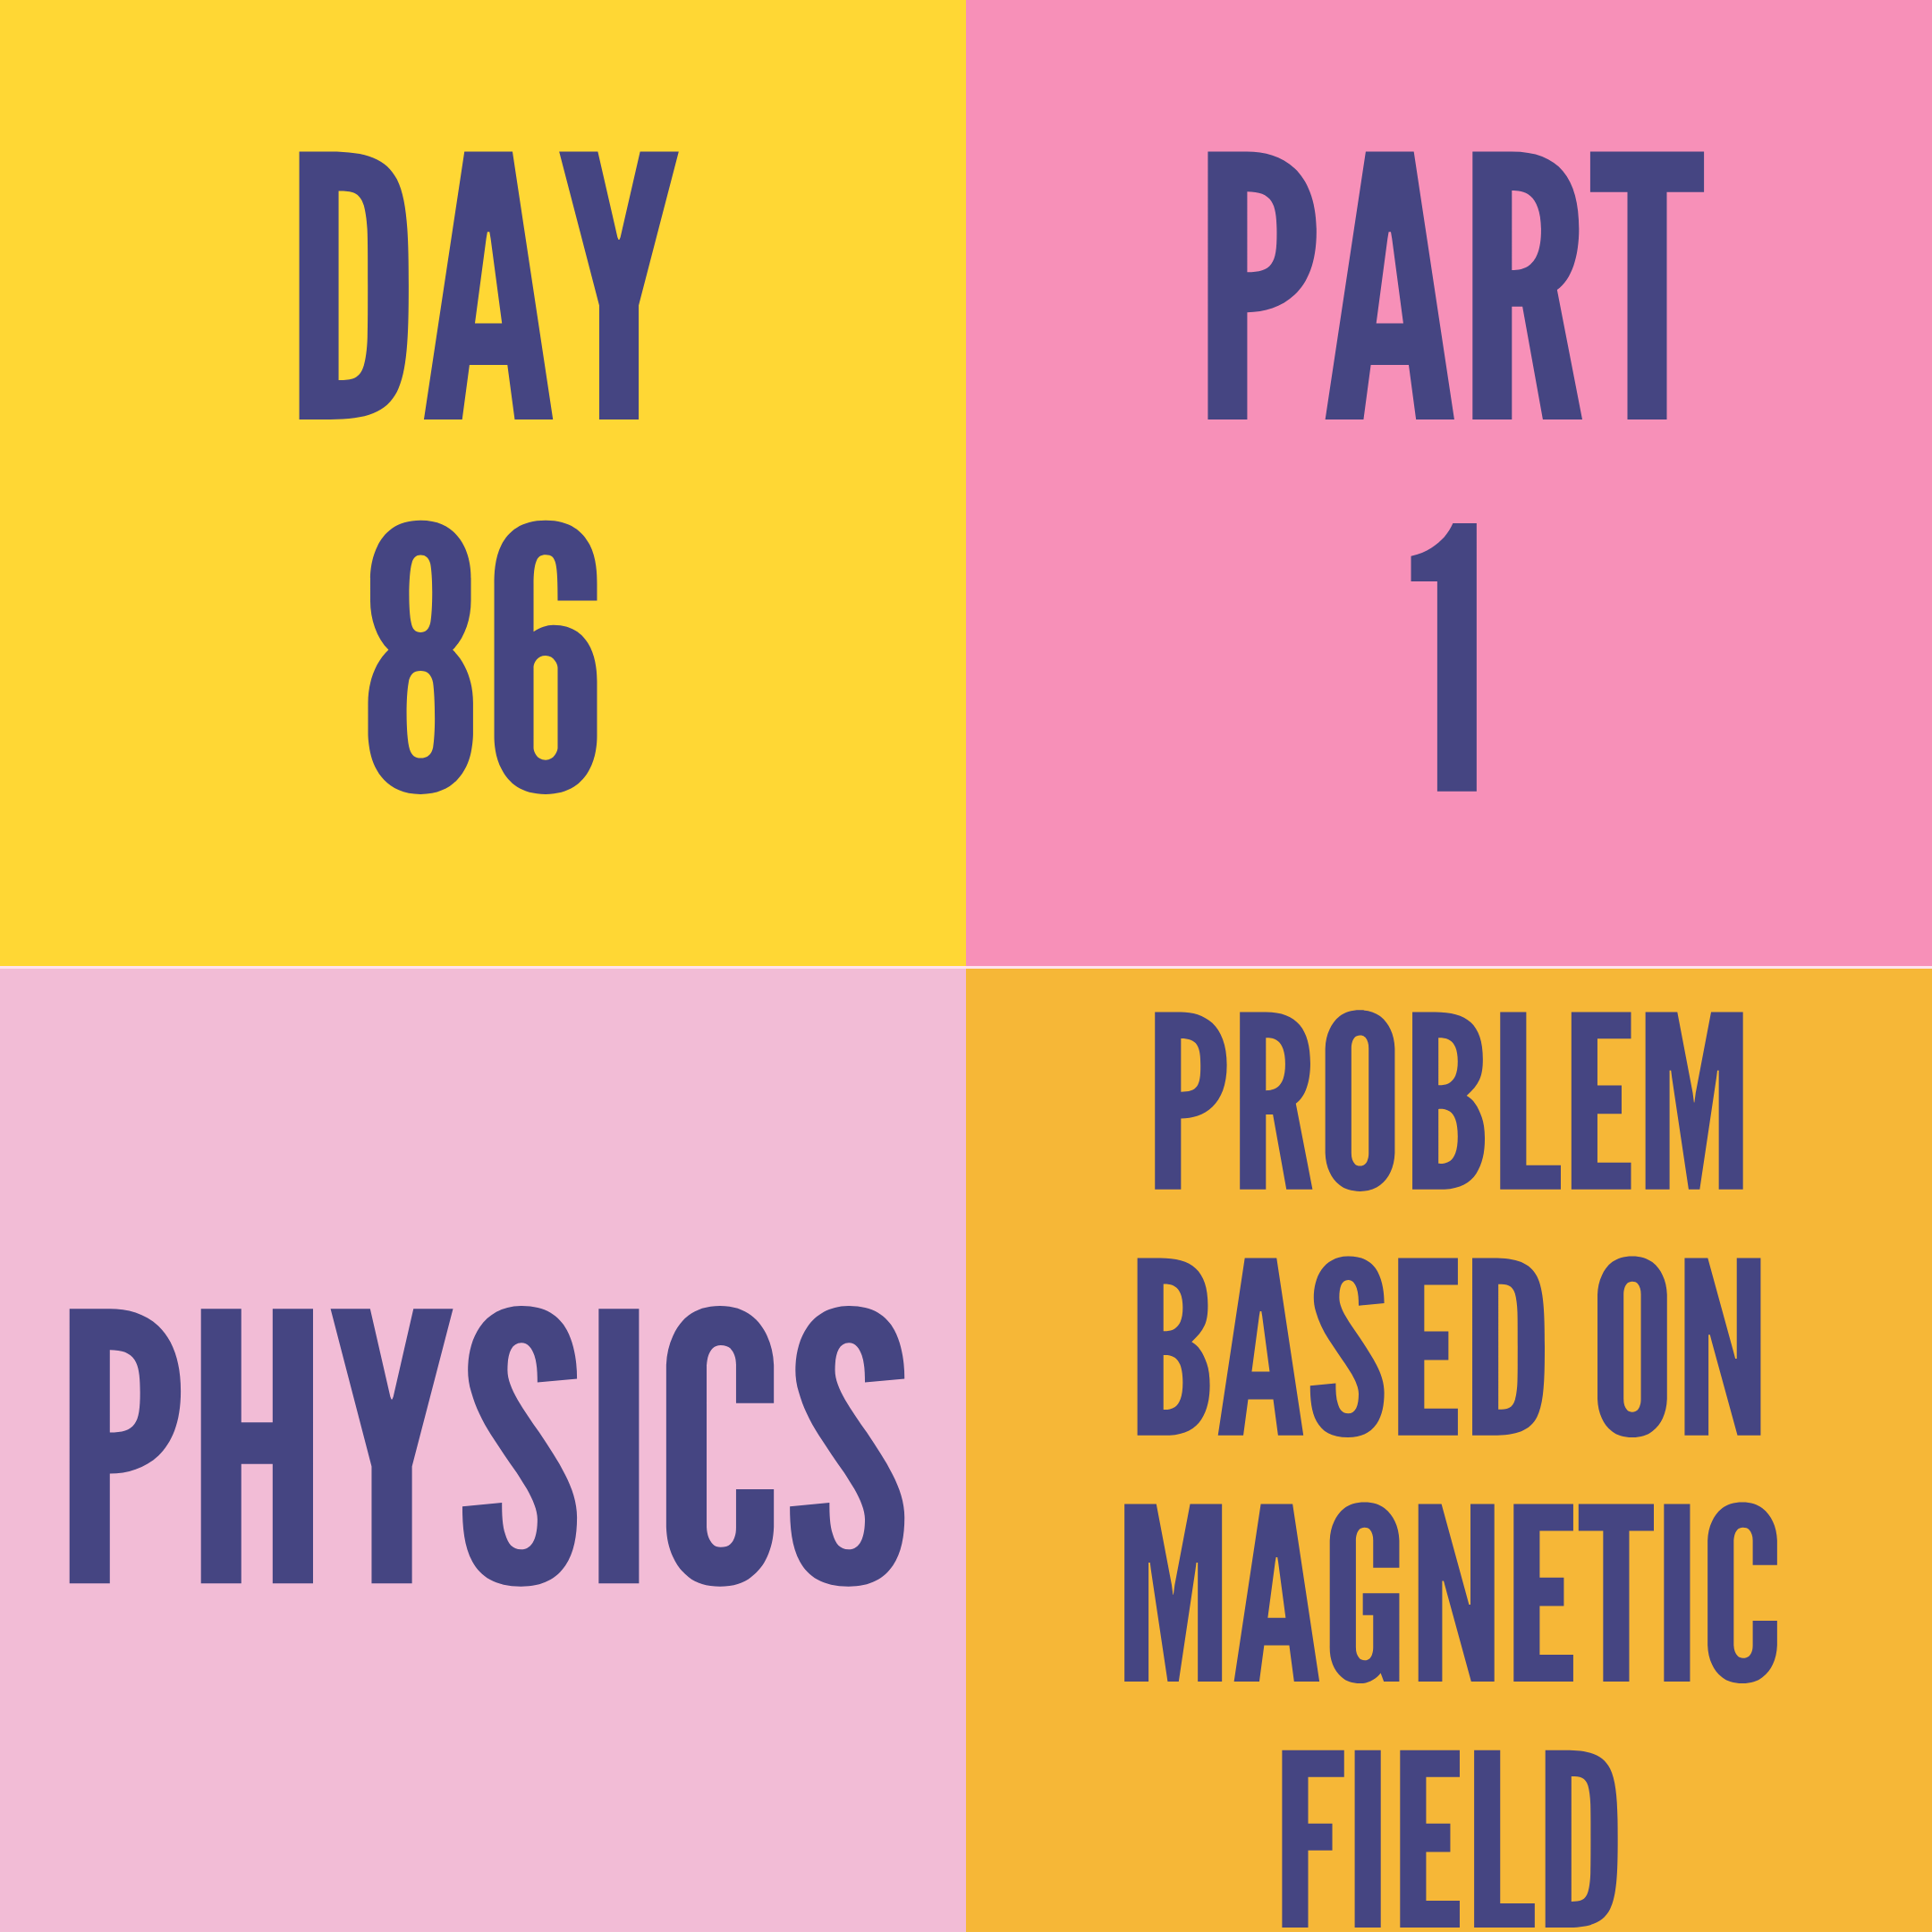 DAY-86 PART-1 PROBLEM BASED ON MAGNETIC FIELD